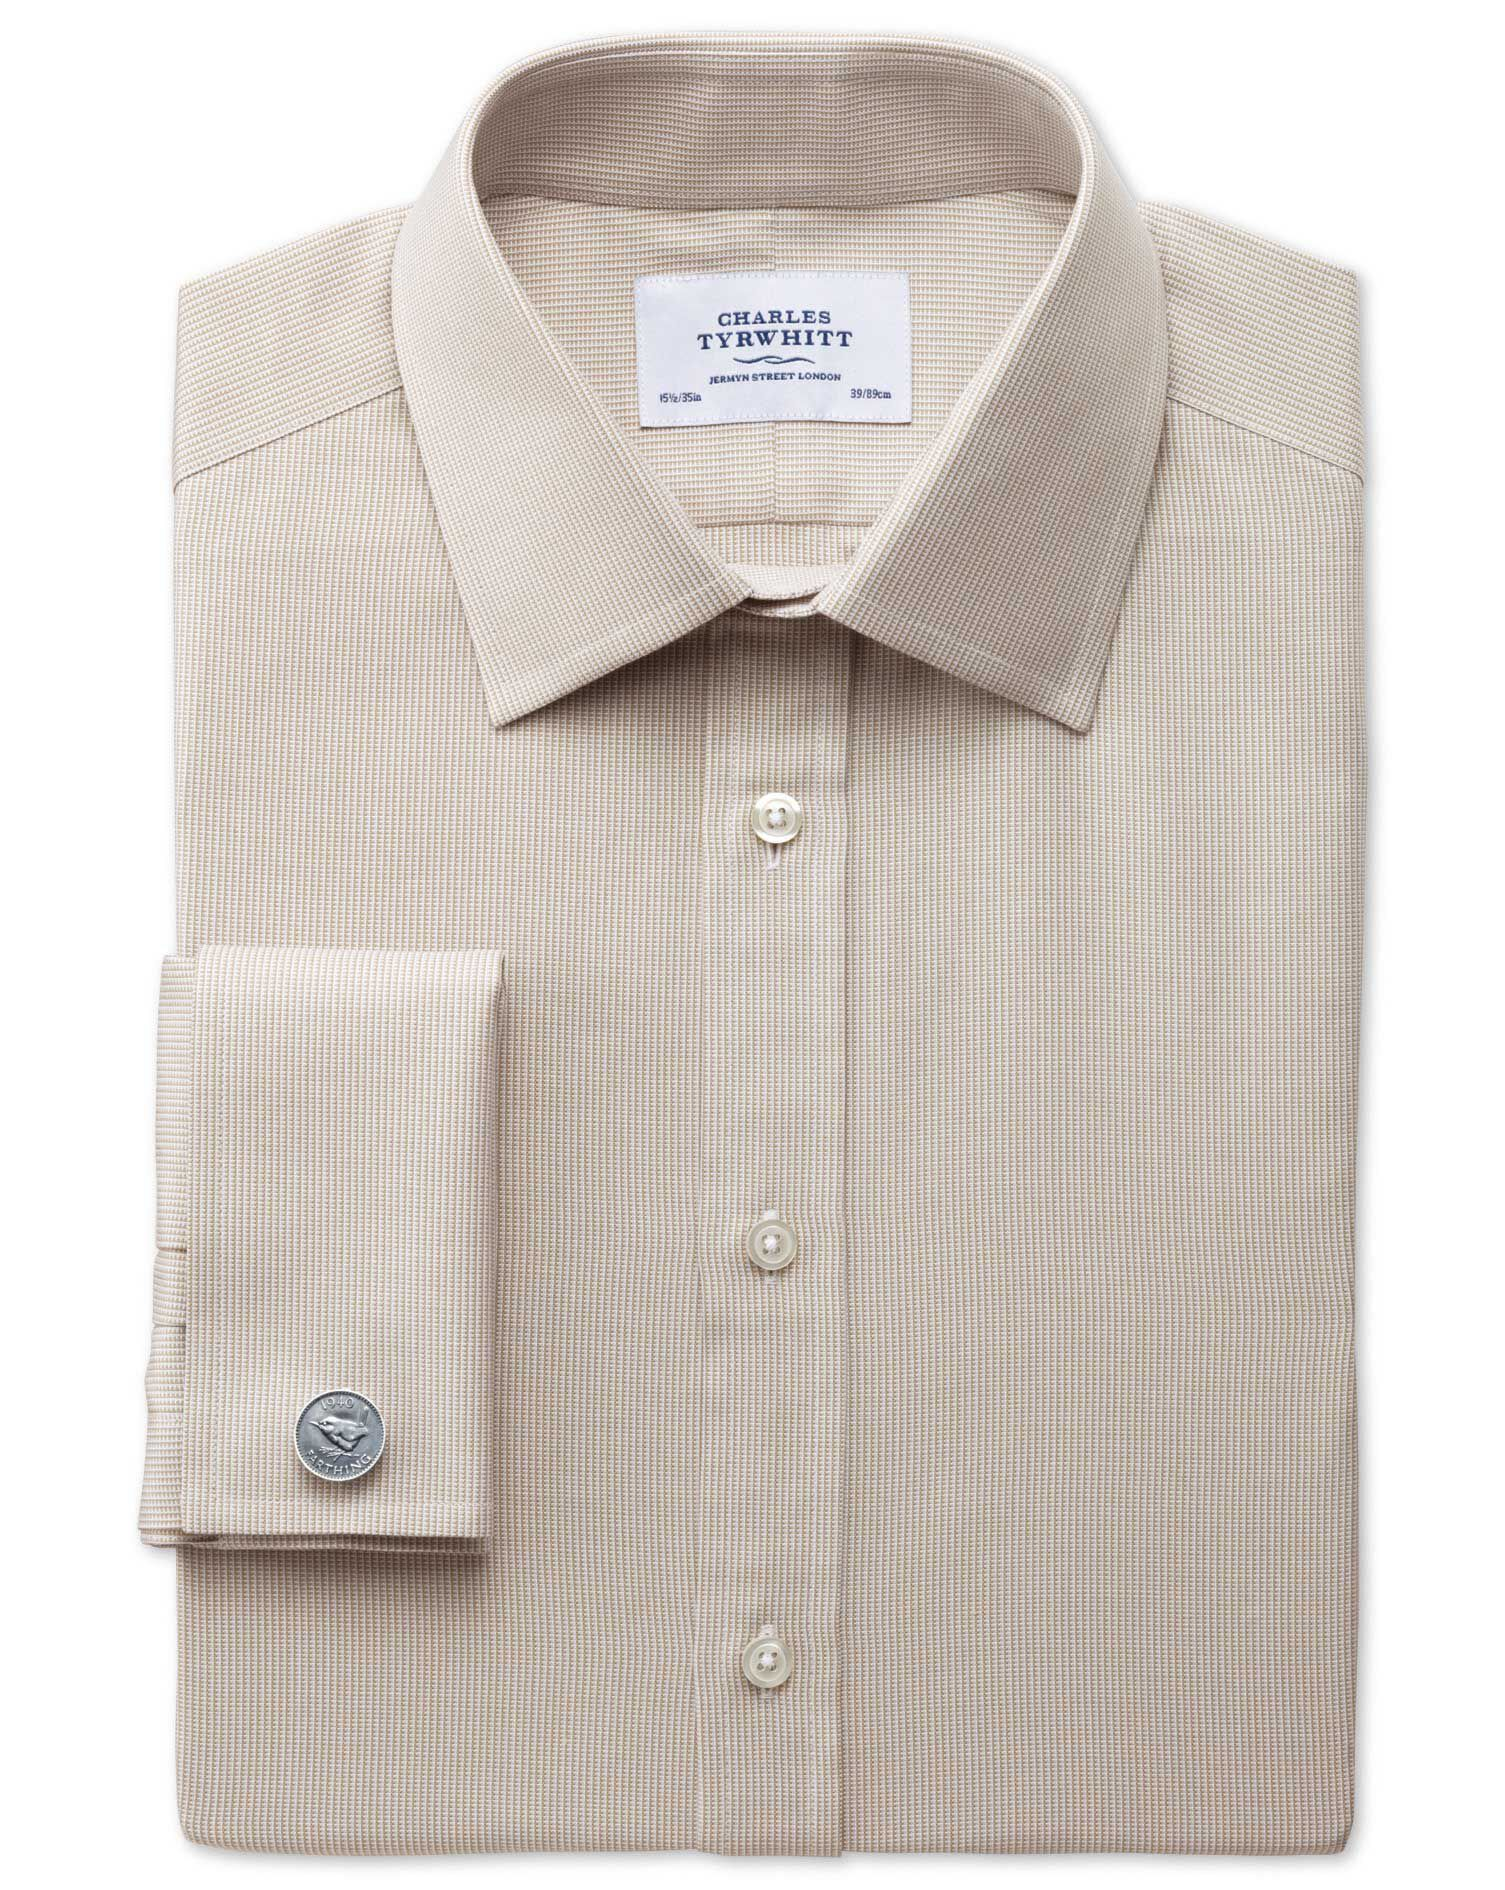 Extra Slim Fit Oxford Stone Cotton Formal Shirt Single Cuff Size 15.5/36 by Charles Tyrwhitt